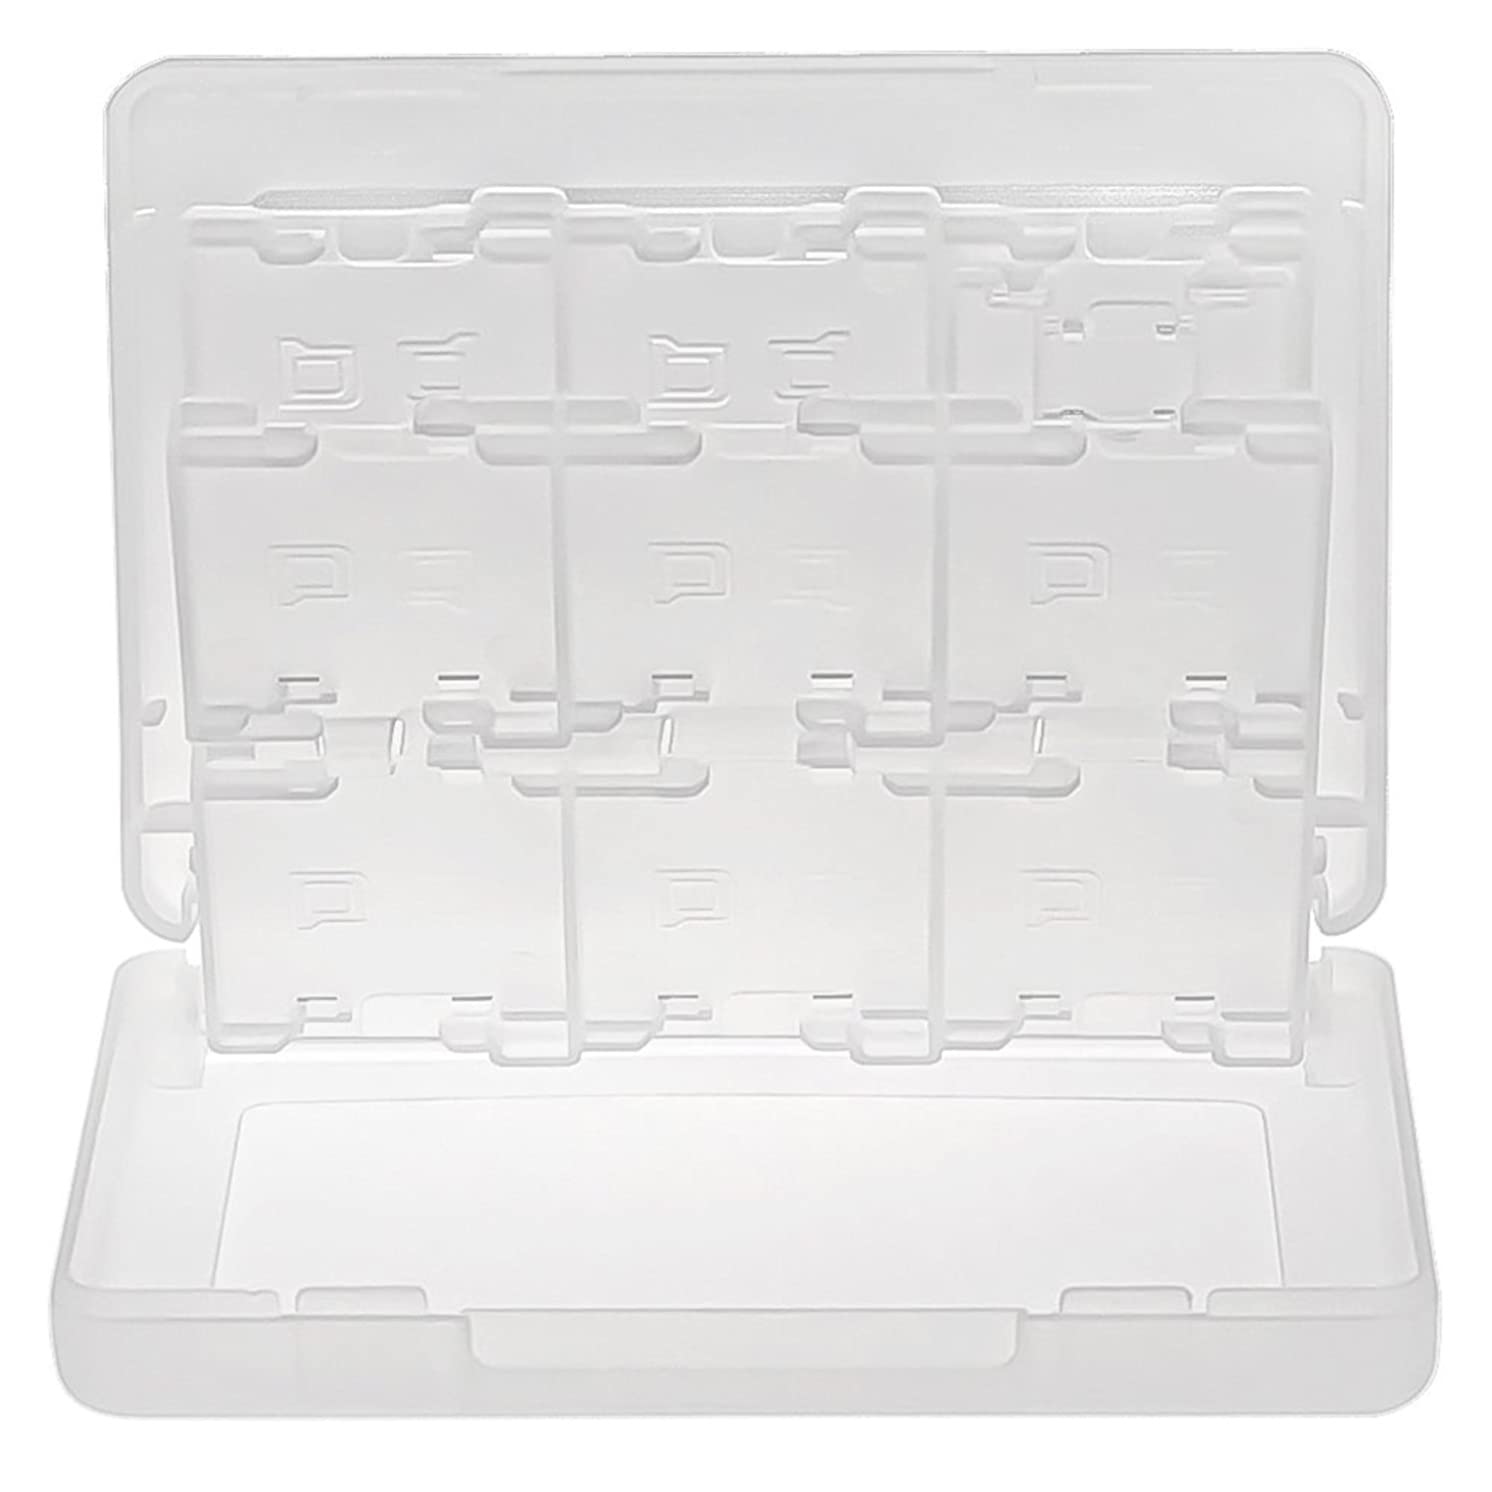 CommonByte White 28 in 1 Game/TF/SD Card Plastic Case For Nintendo 3DS